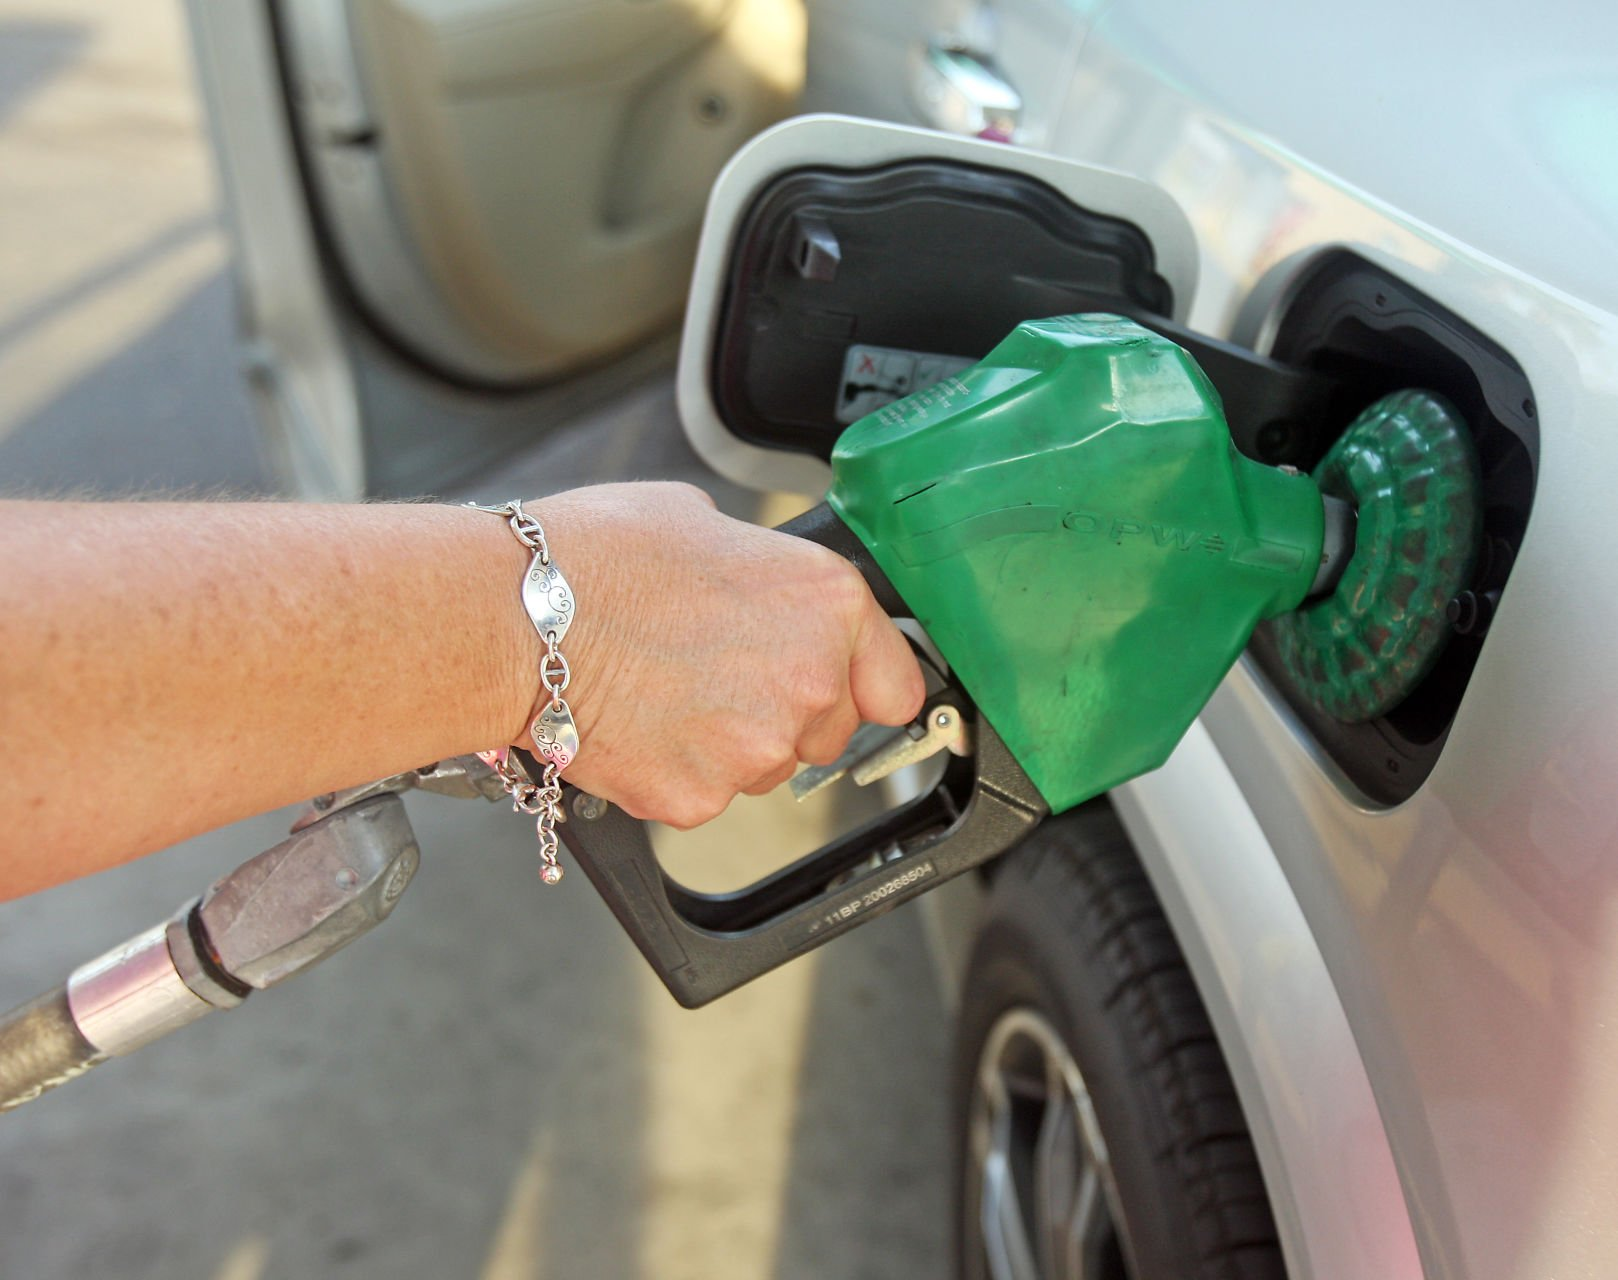 Gas prices rise for first time since April